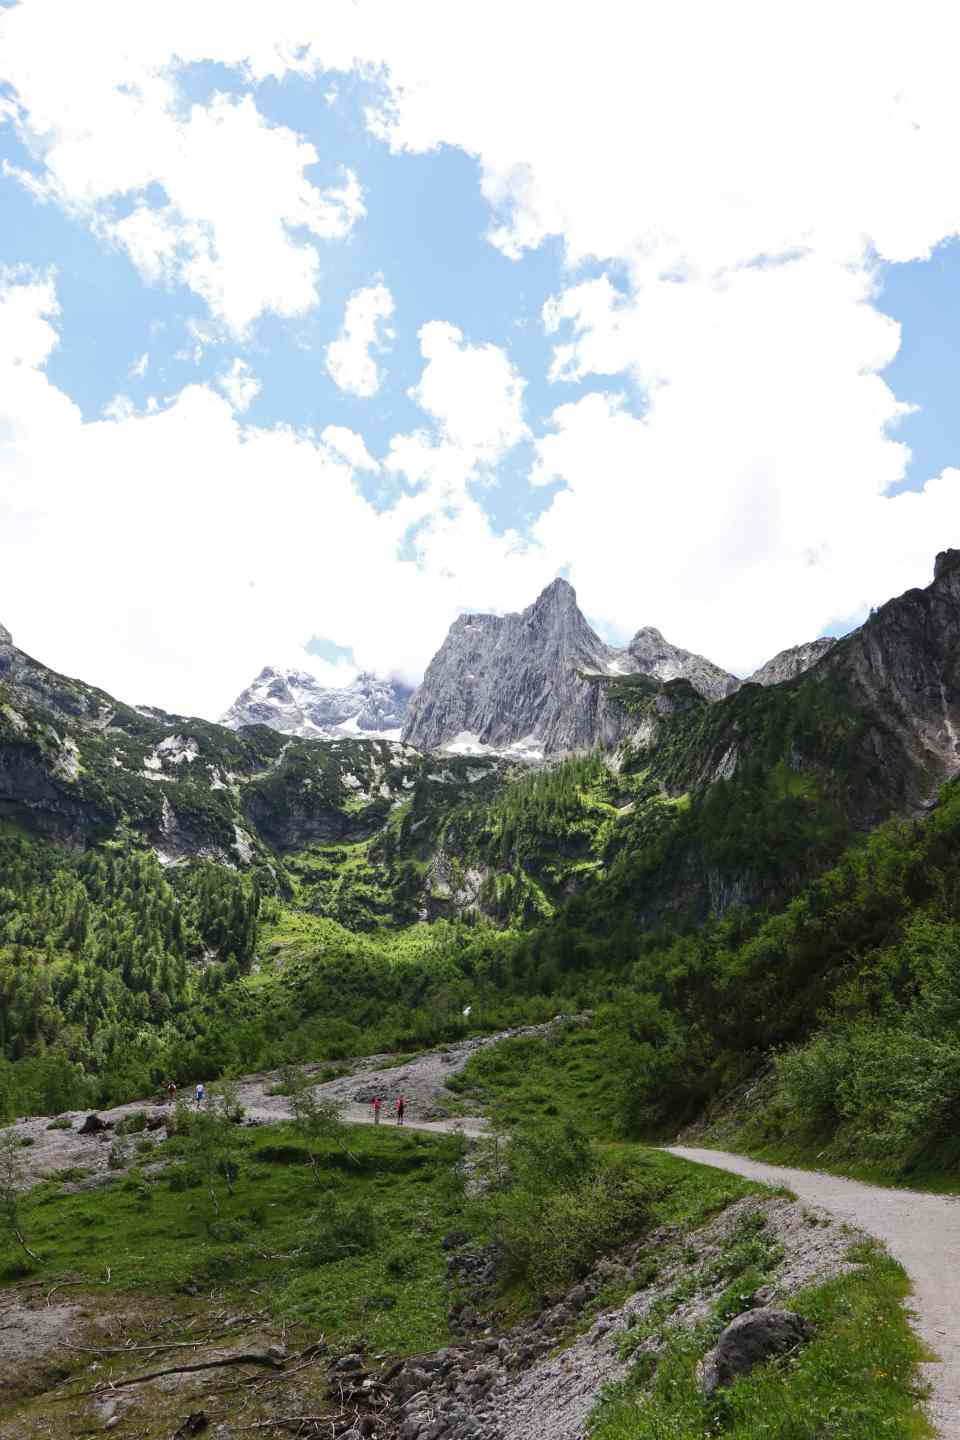 The hiking trail to Hinterer Gosausee from Lake Gosau